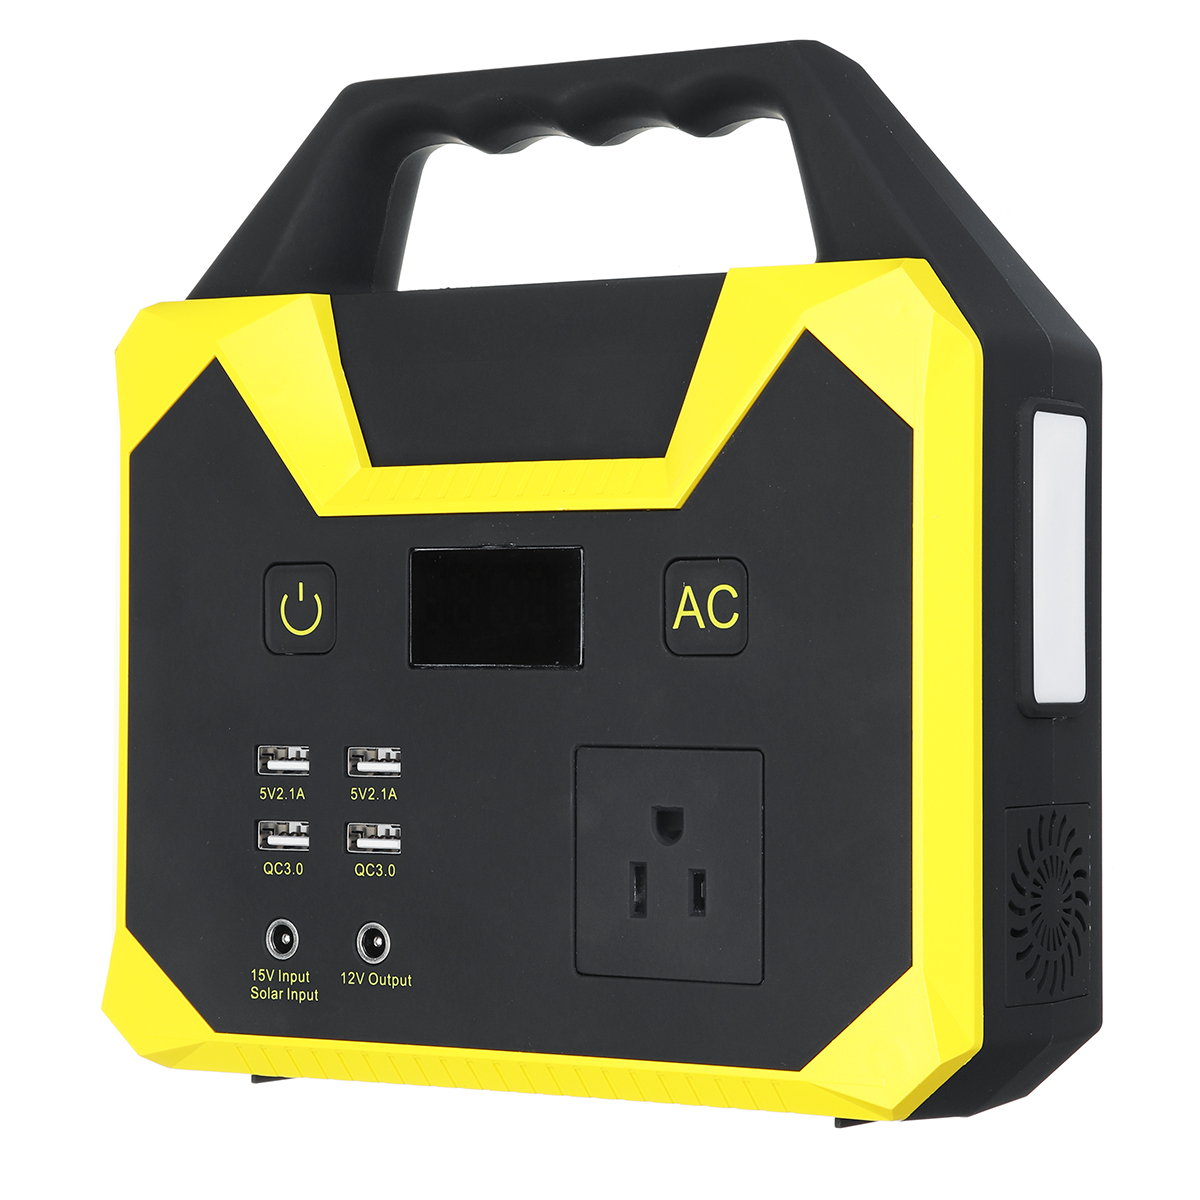 UPS Portable Generator Power Supply 220V 40800mah 150WH 200W 15A Solar Energy Storage USB Charger